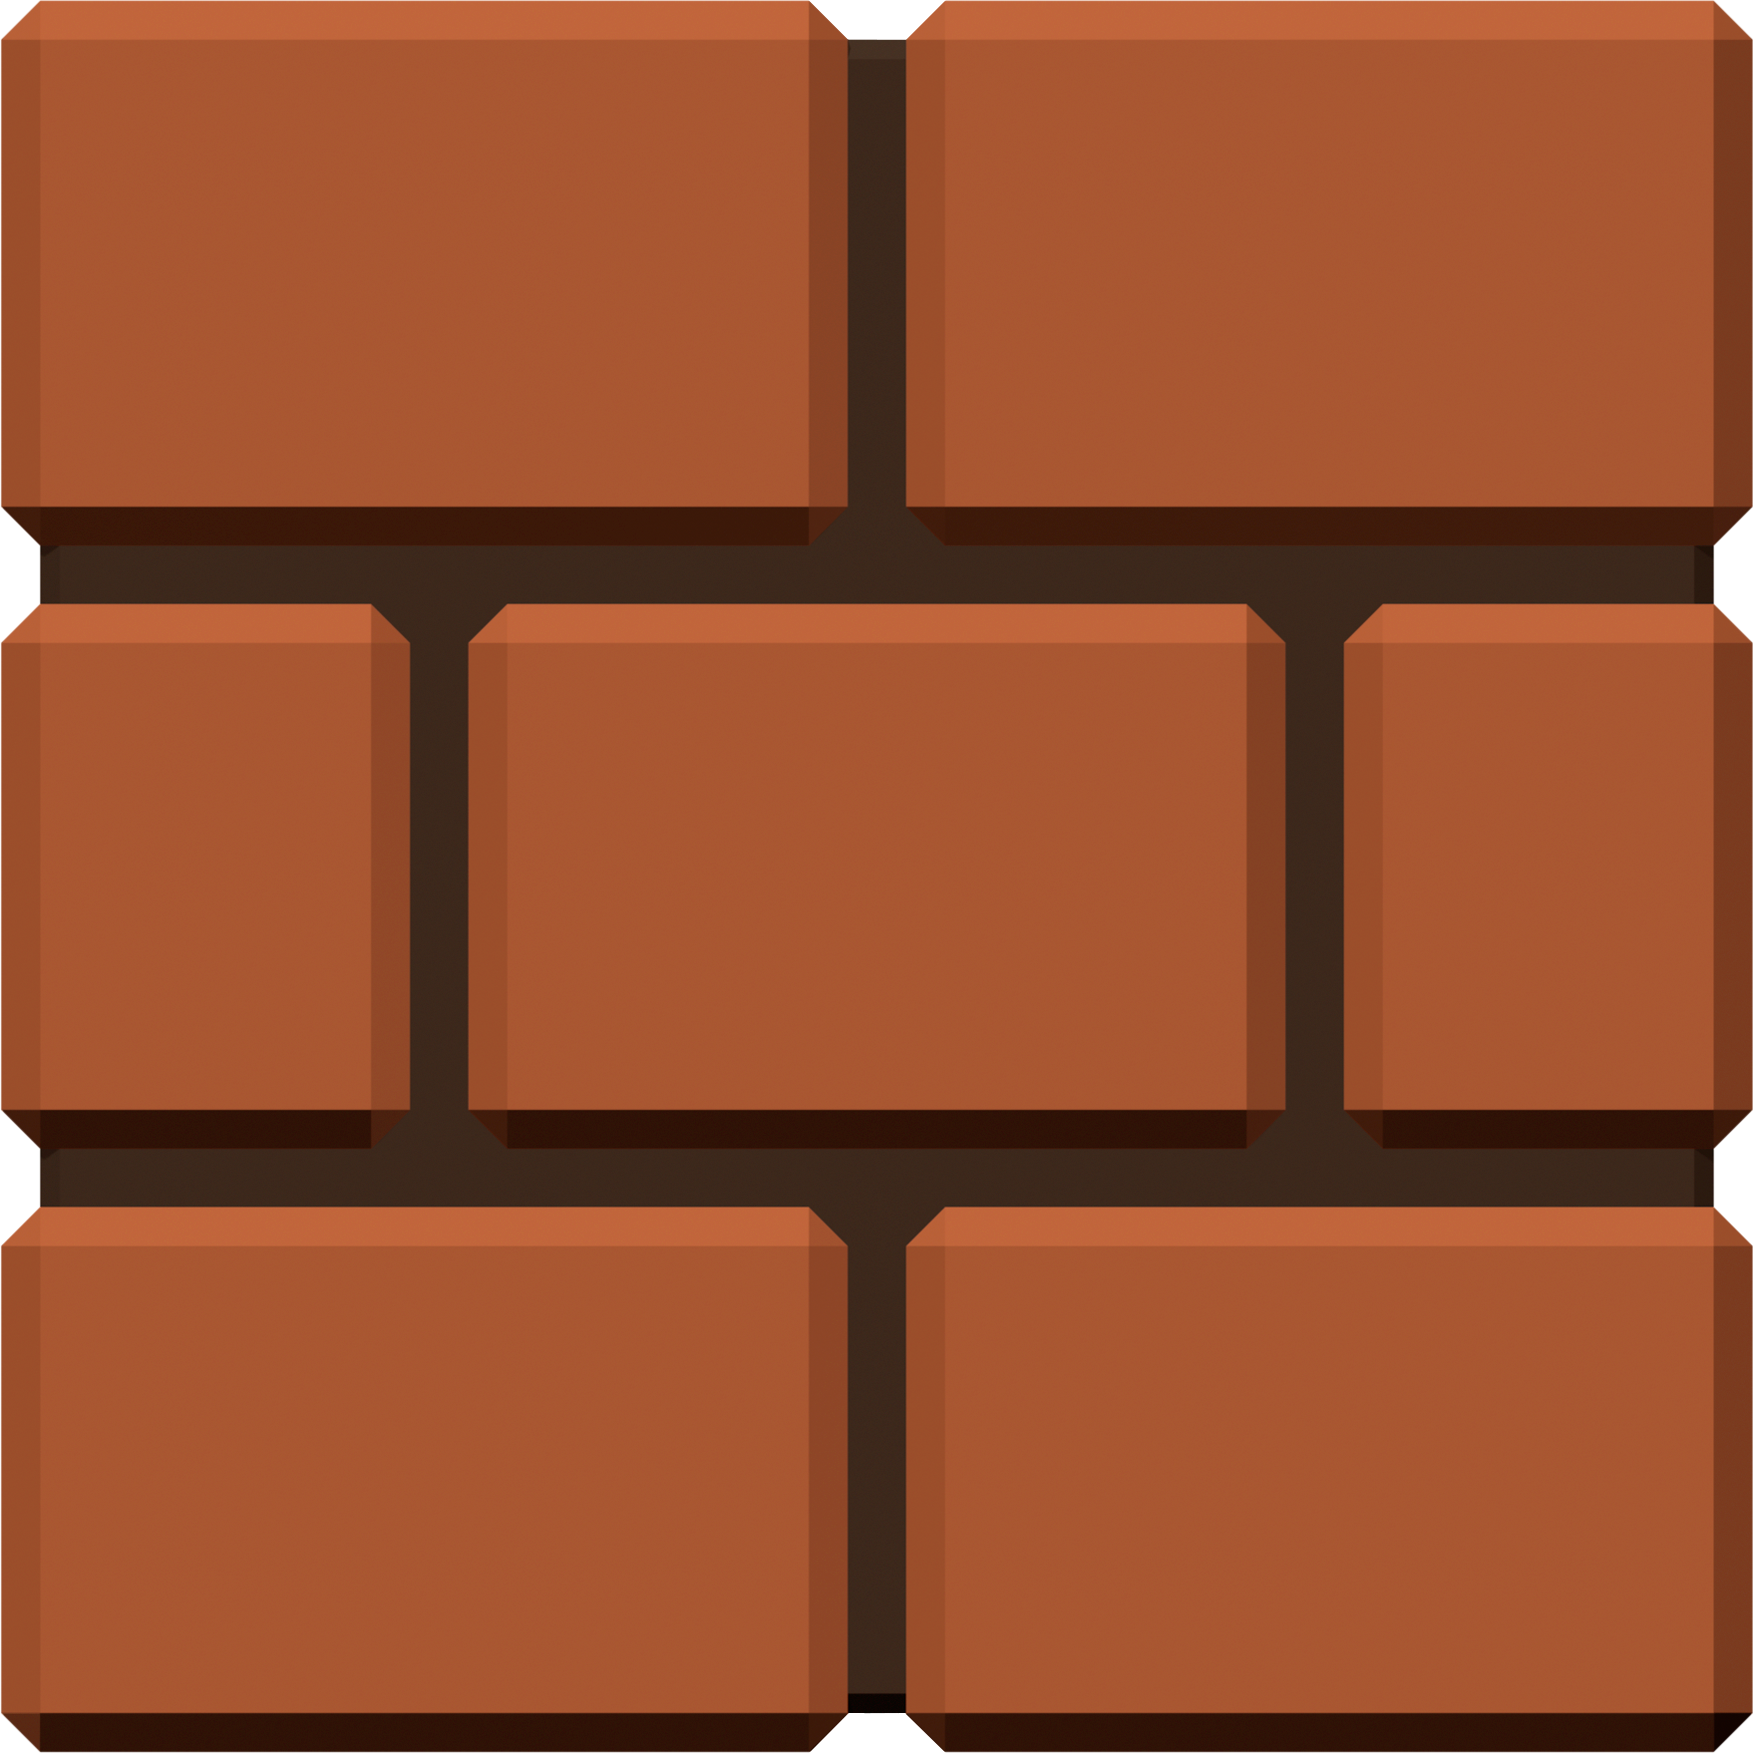 Brick Best Images Free Clipart image #39834